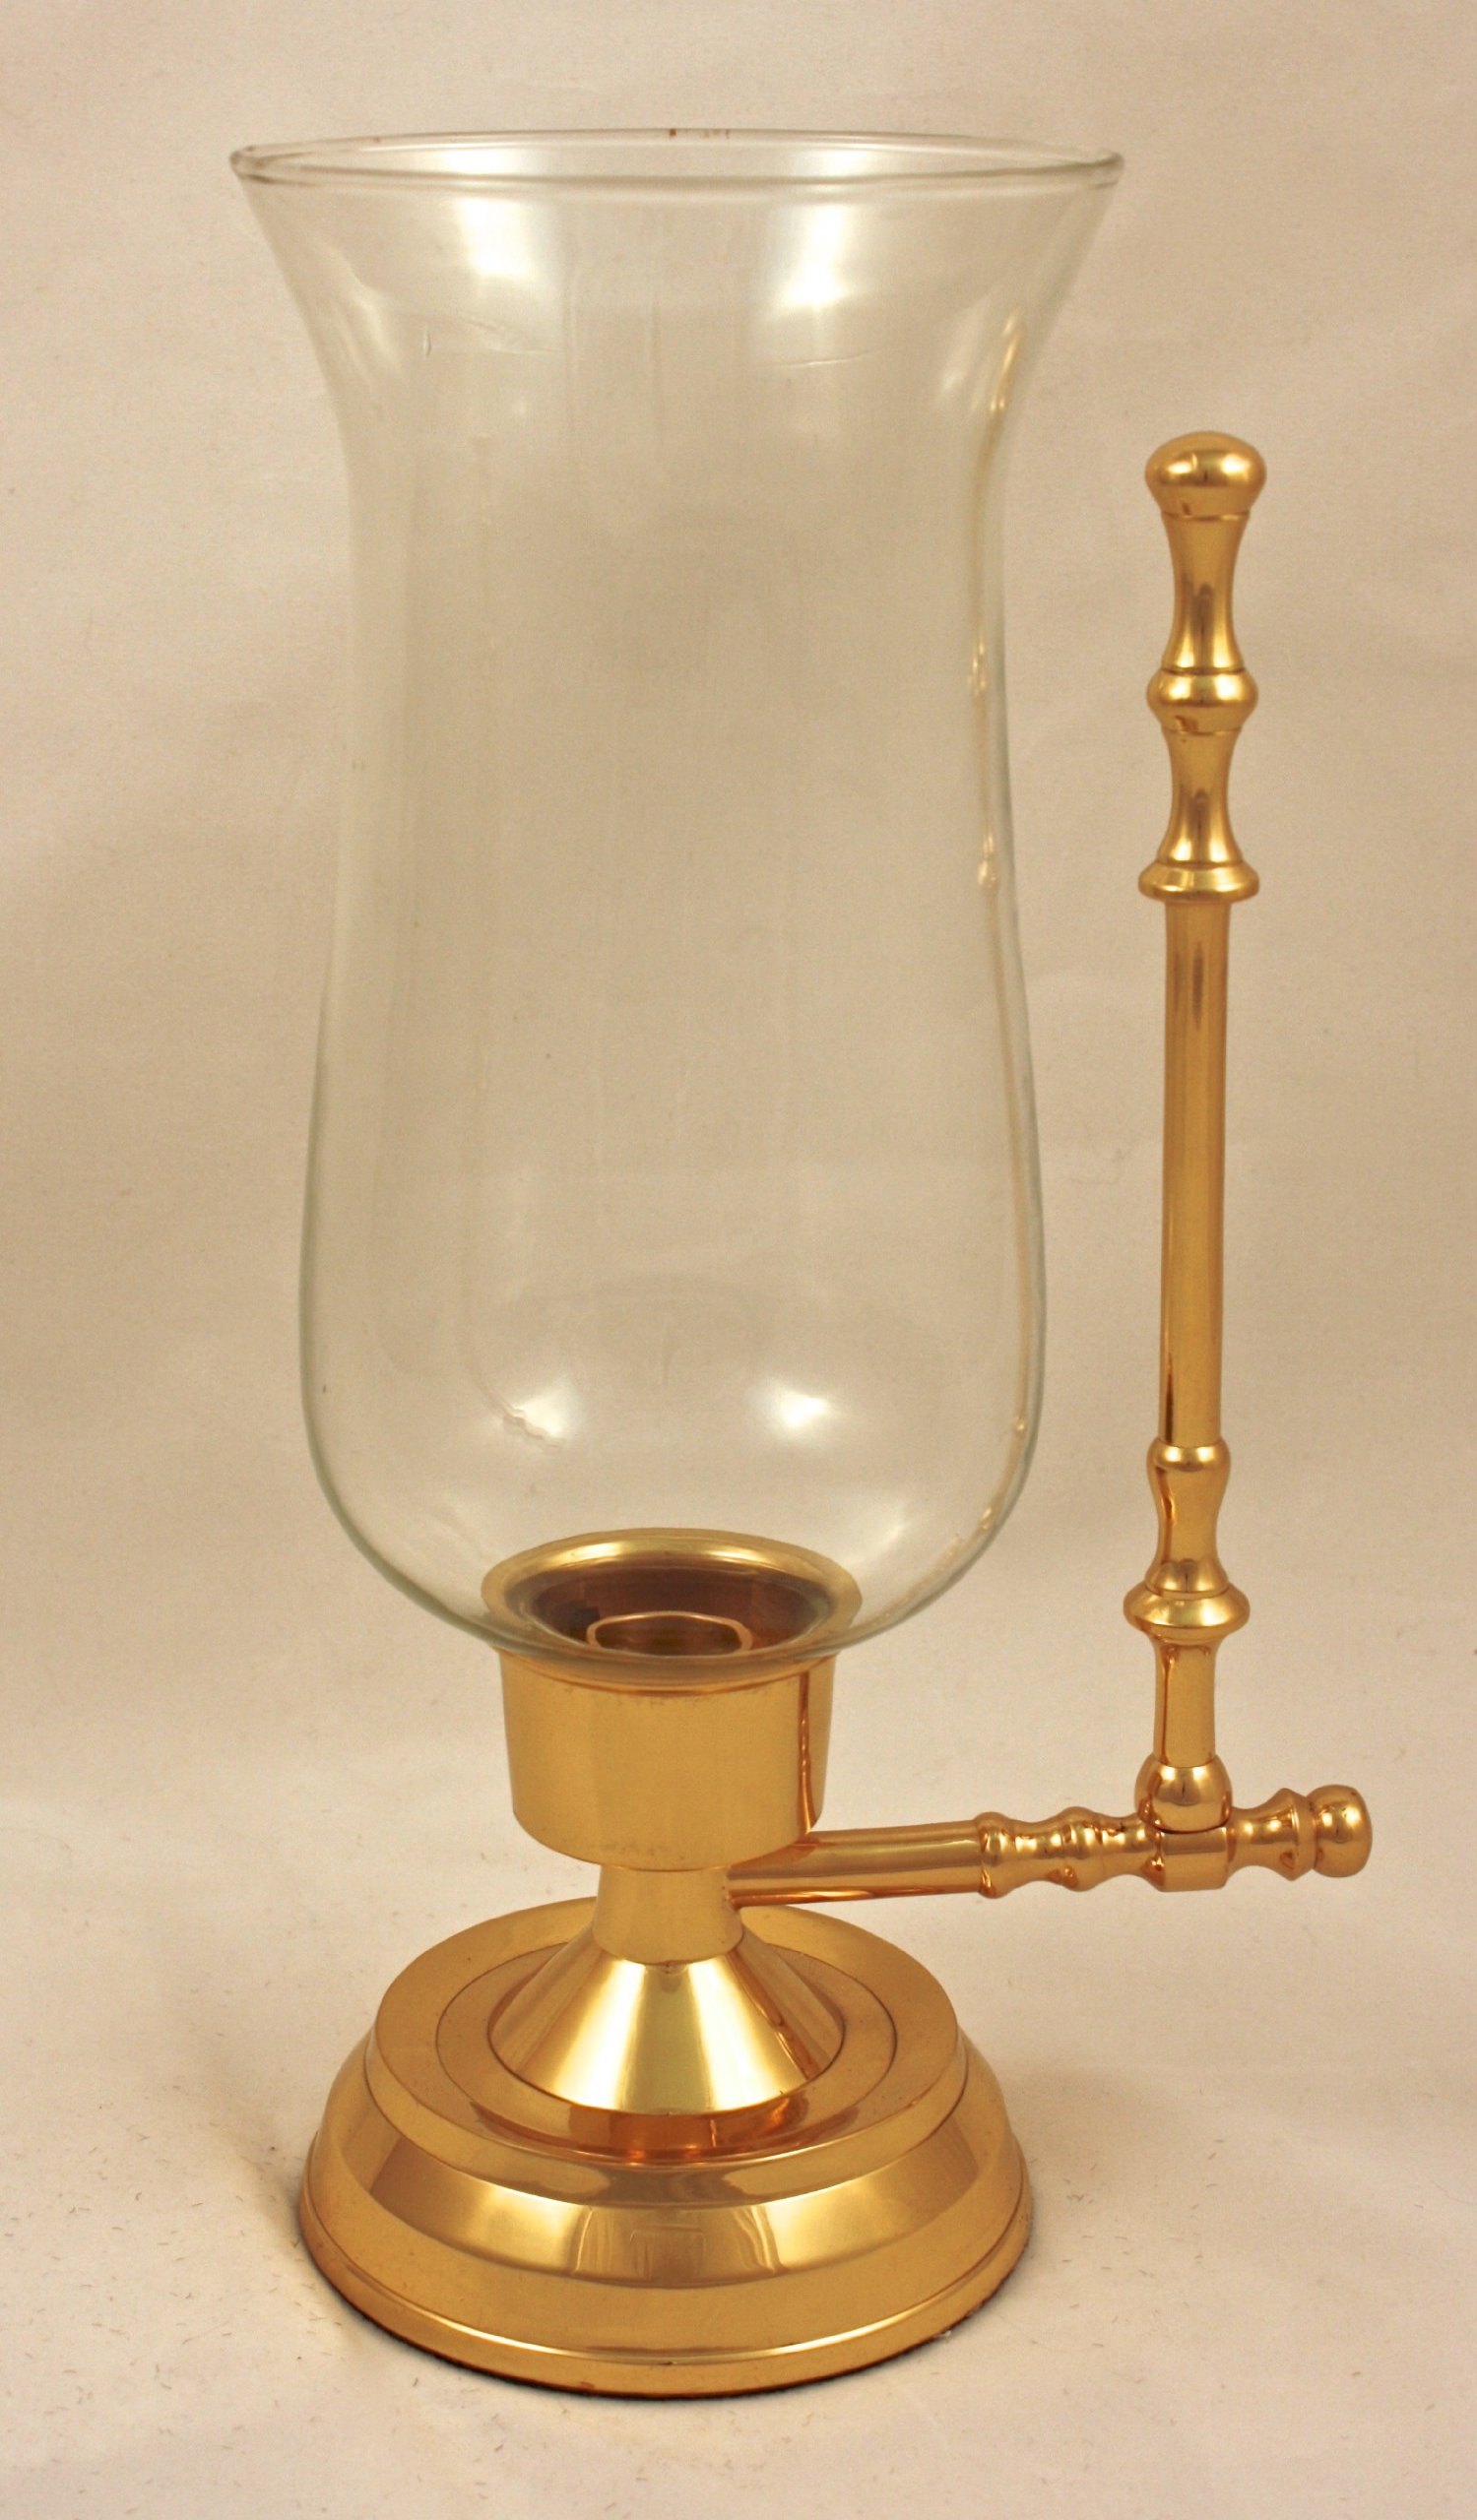 Brass & Silver Traditions Whaler's Hurricane Lamp